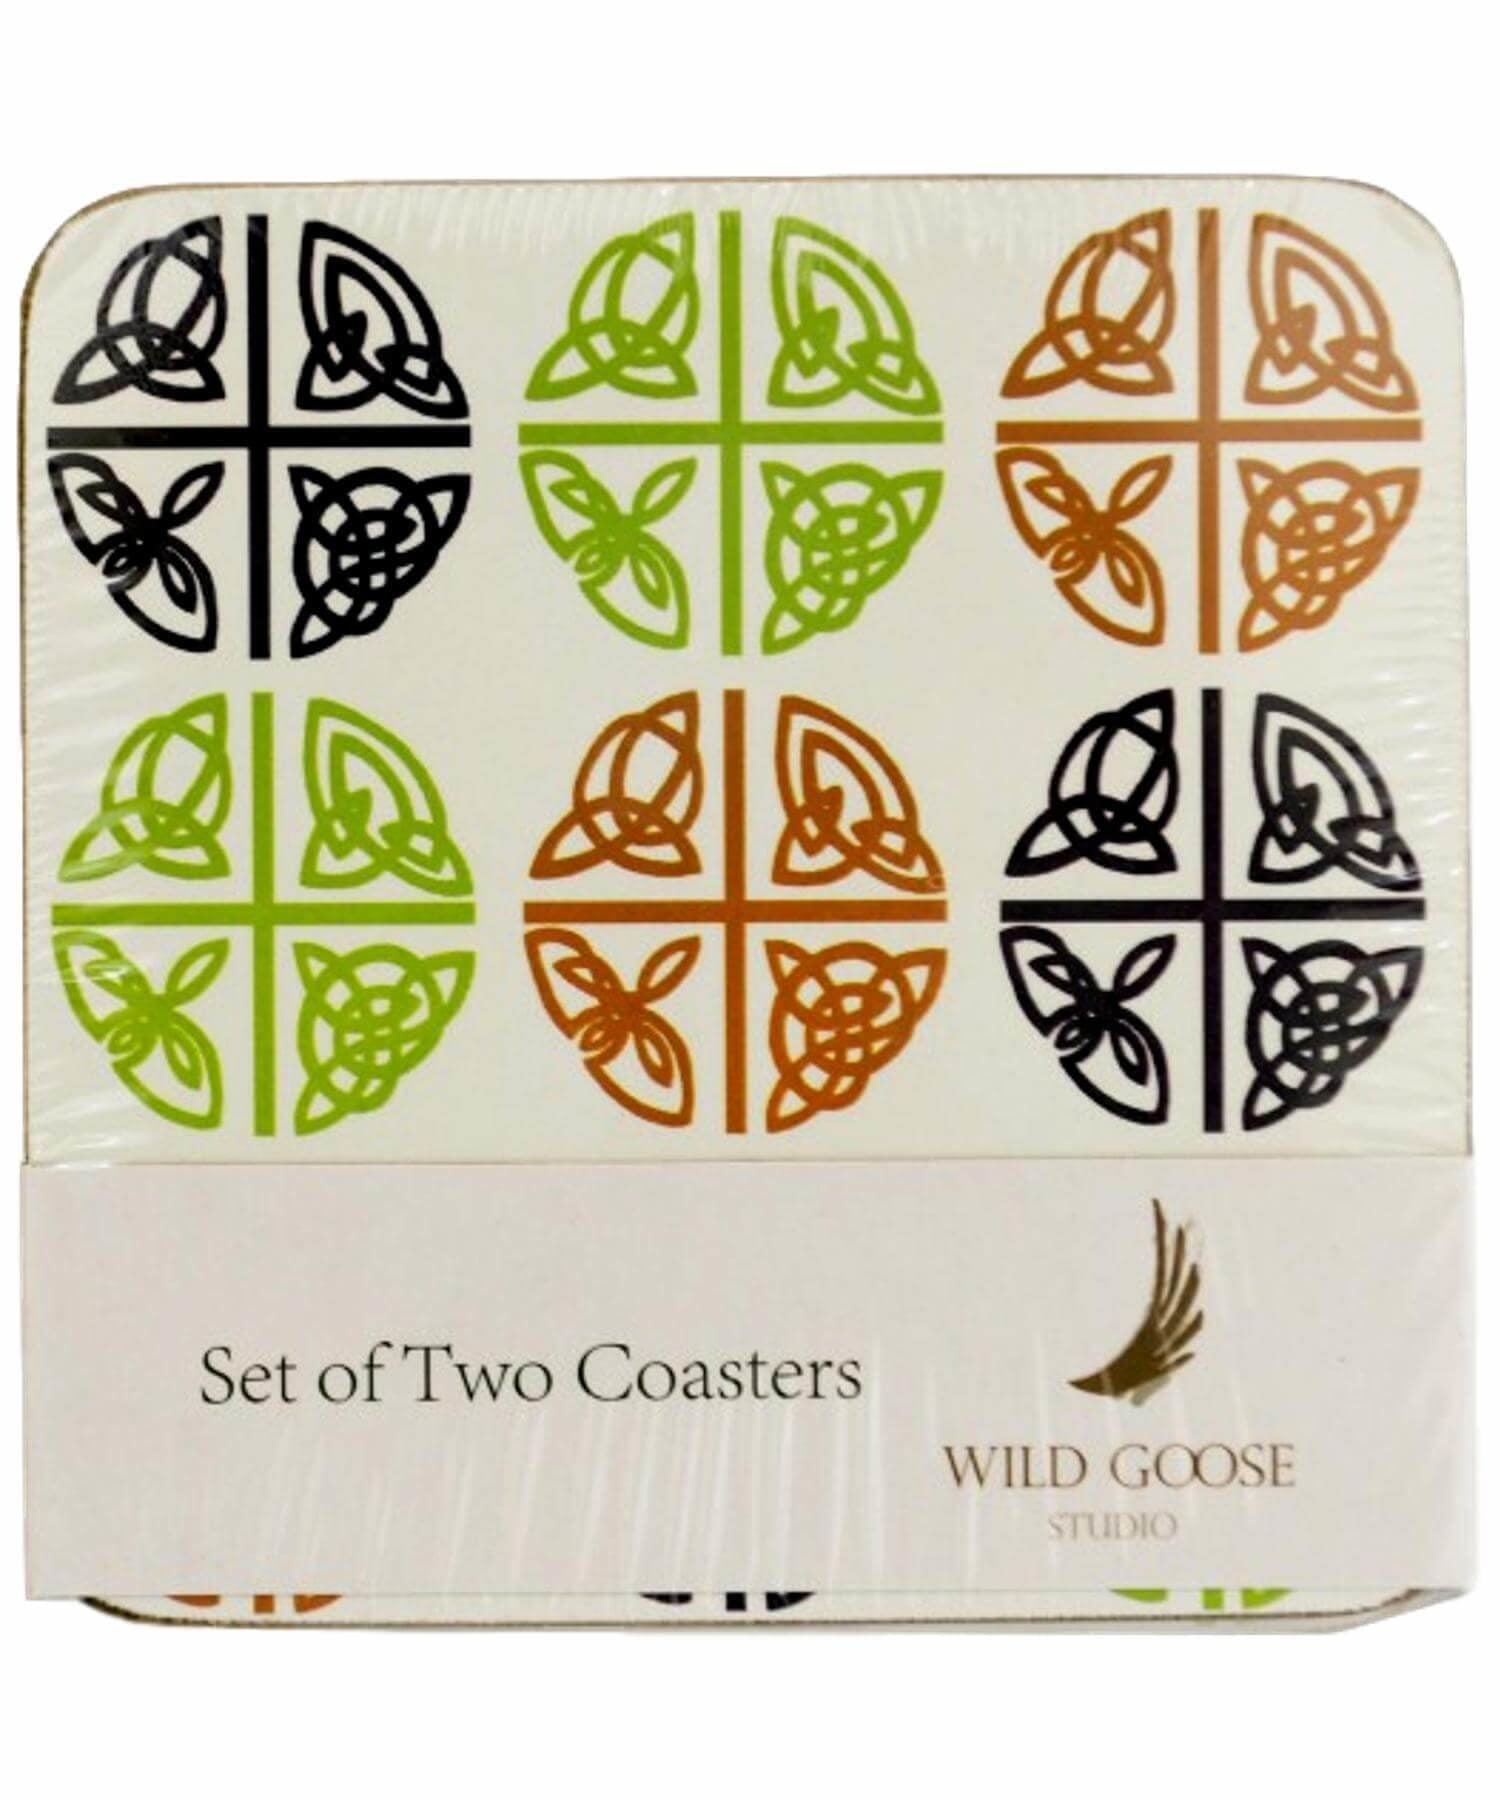 Coaster Set - Celtic Love Crosses Wild Goose Souvenir